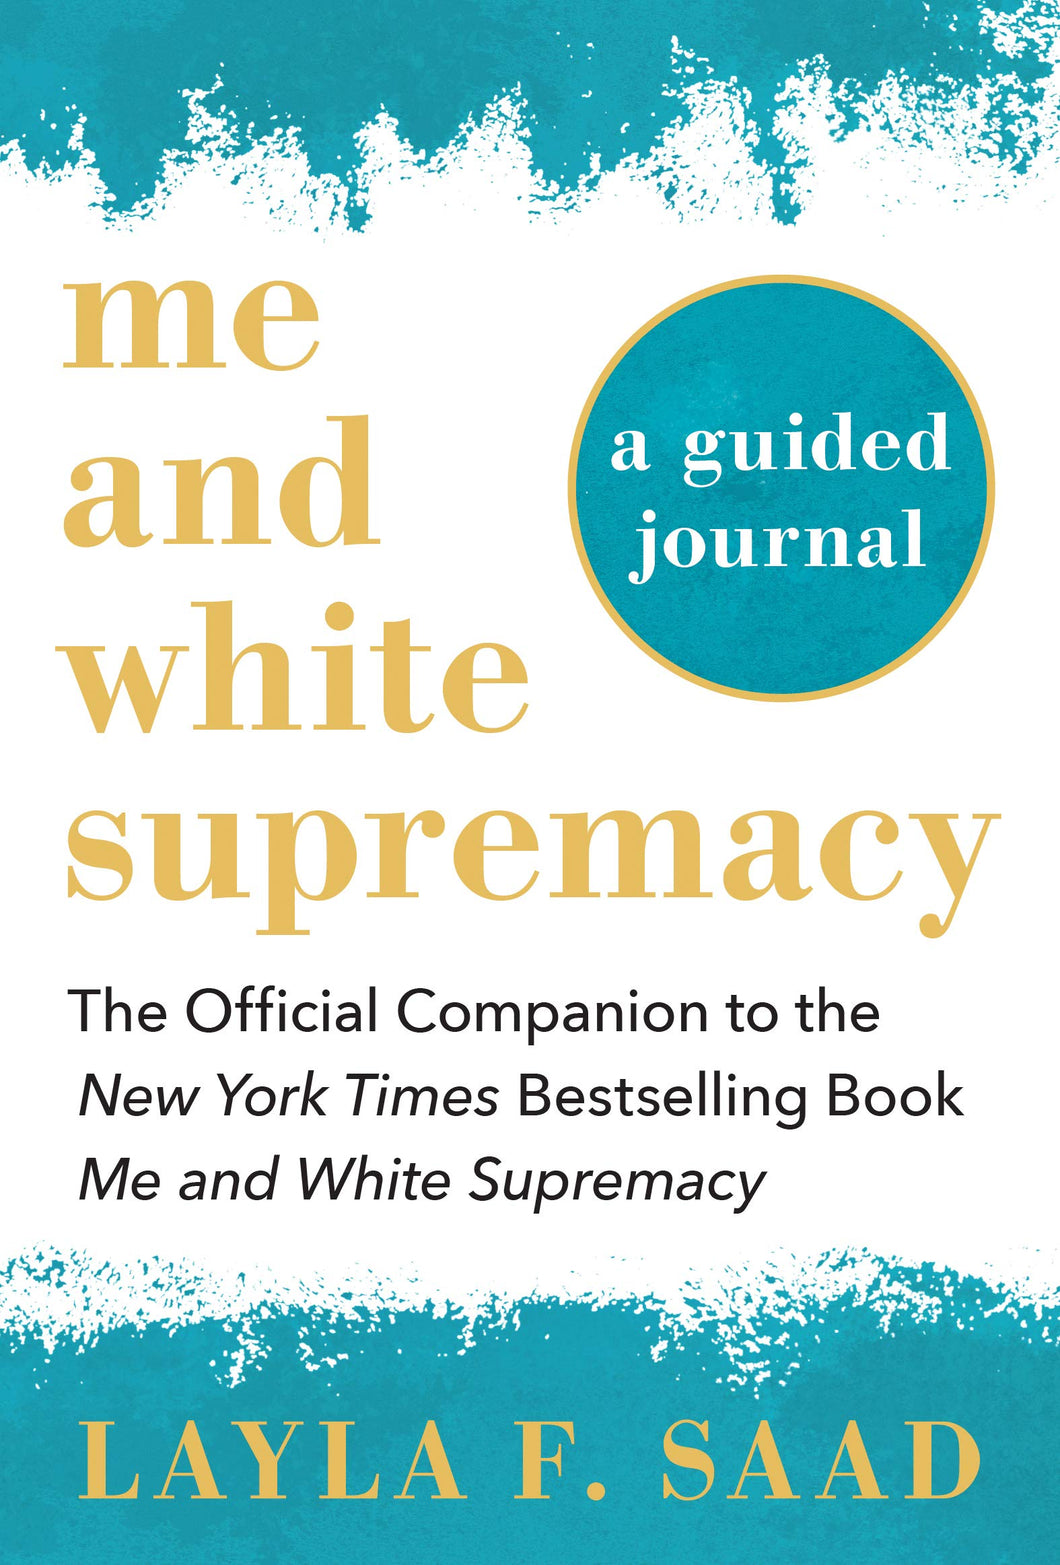 Me and White Supremacy: A Guided Journal: The Official Companion to the New York Times Bestselling Book Me and White Supremacy by Layla Saad (Pre-Order, Nov 10th)